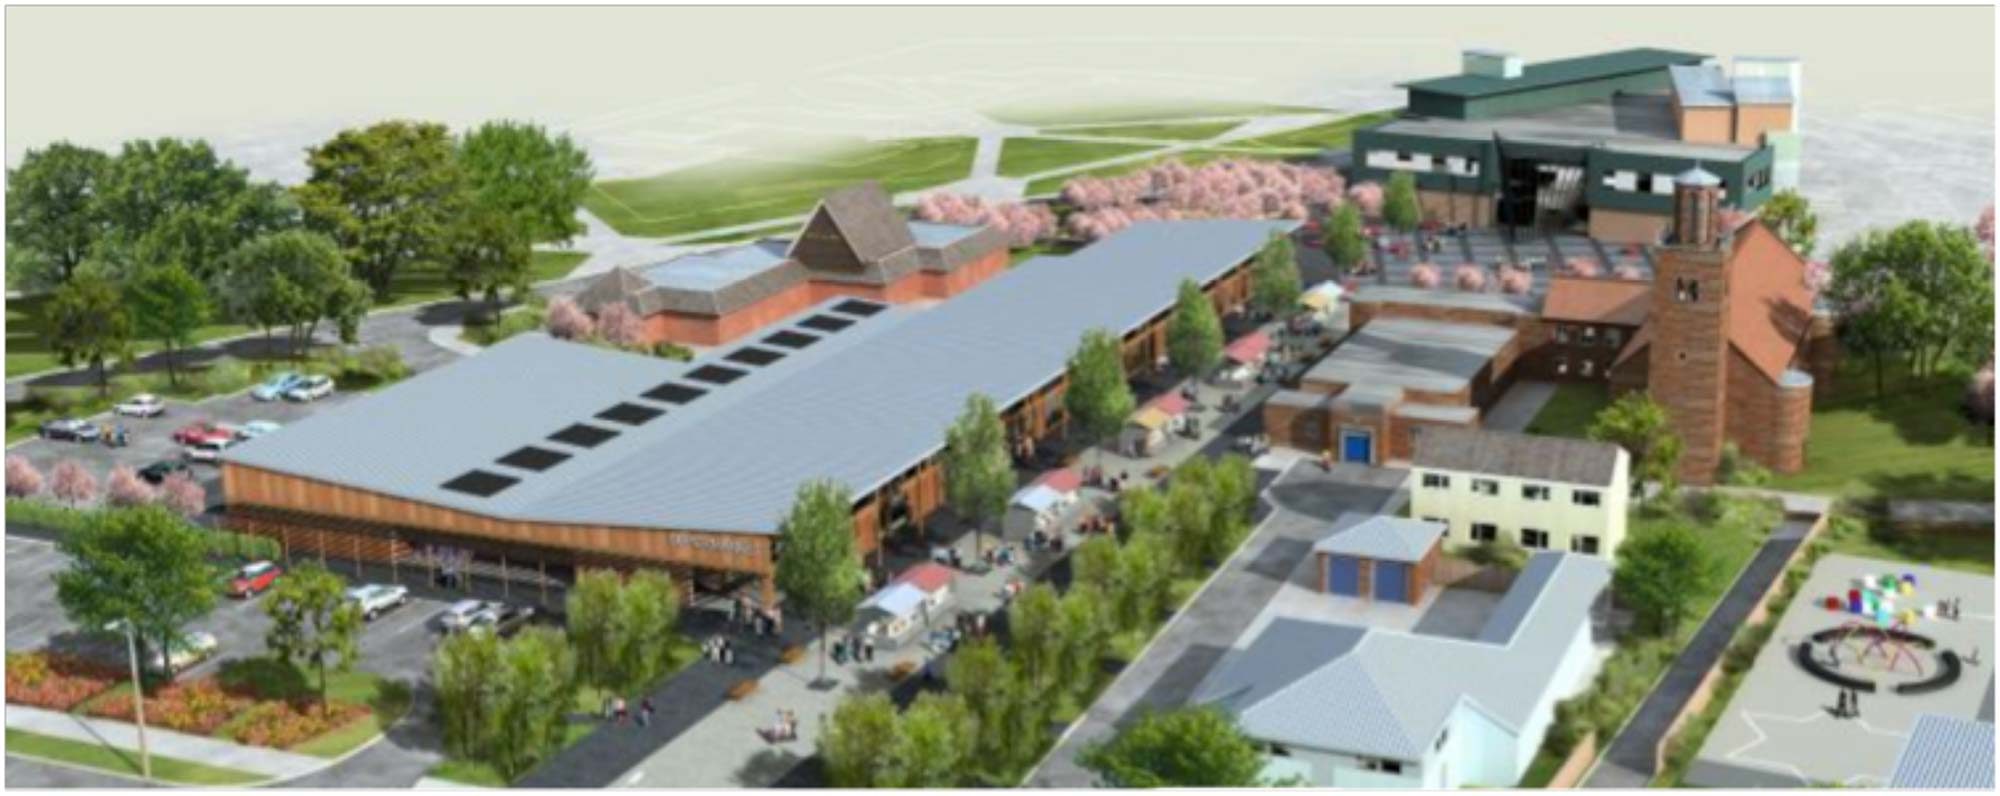 Orchard park retail scheme cityheart for Orchard park